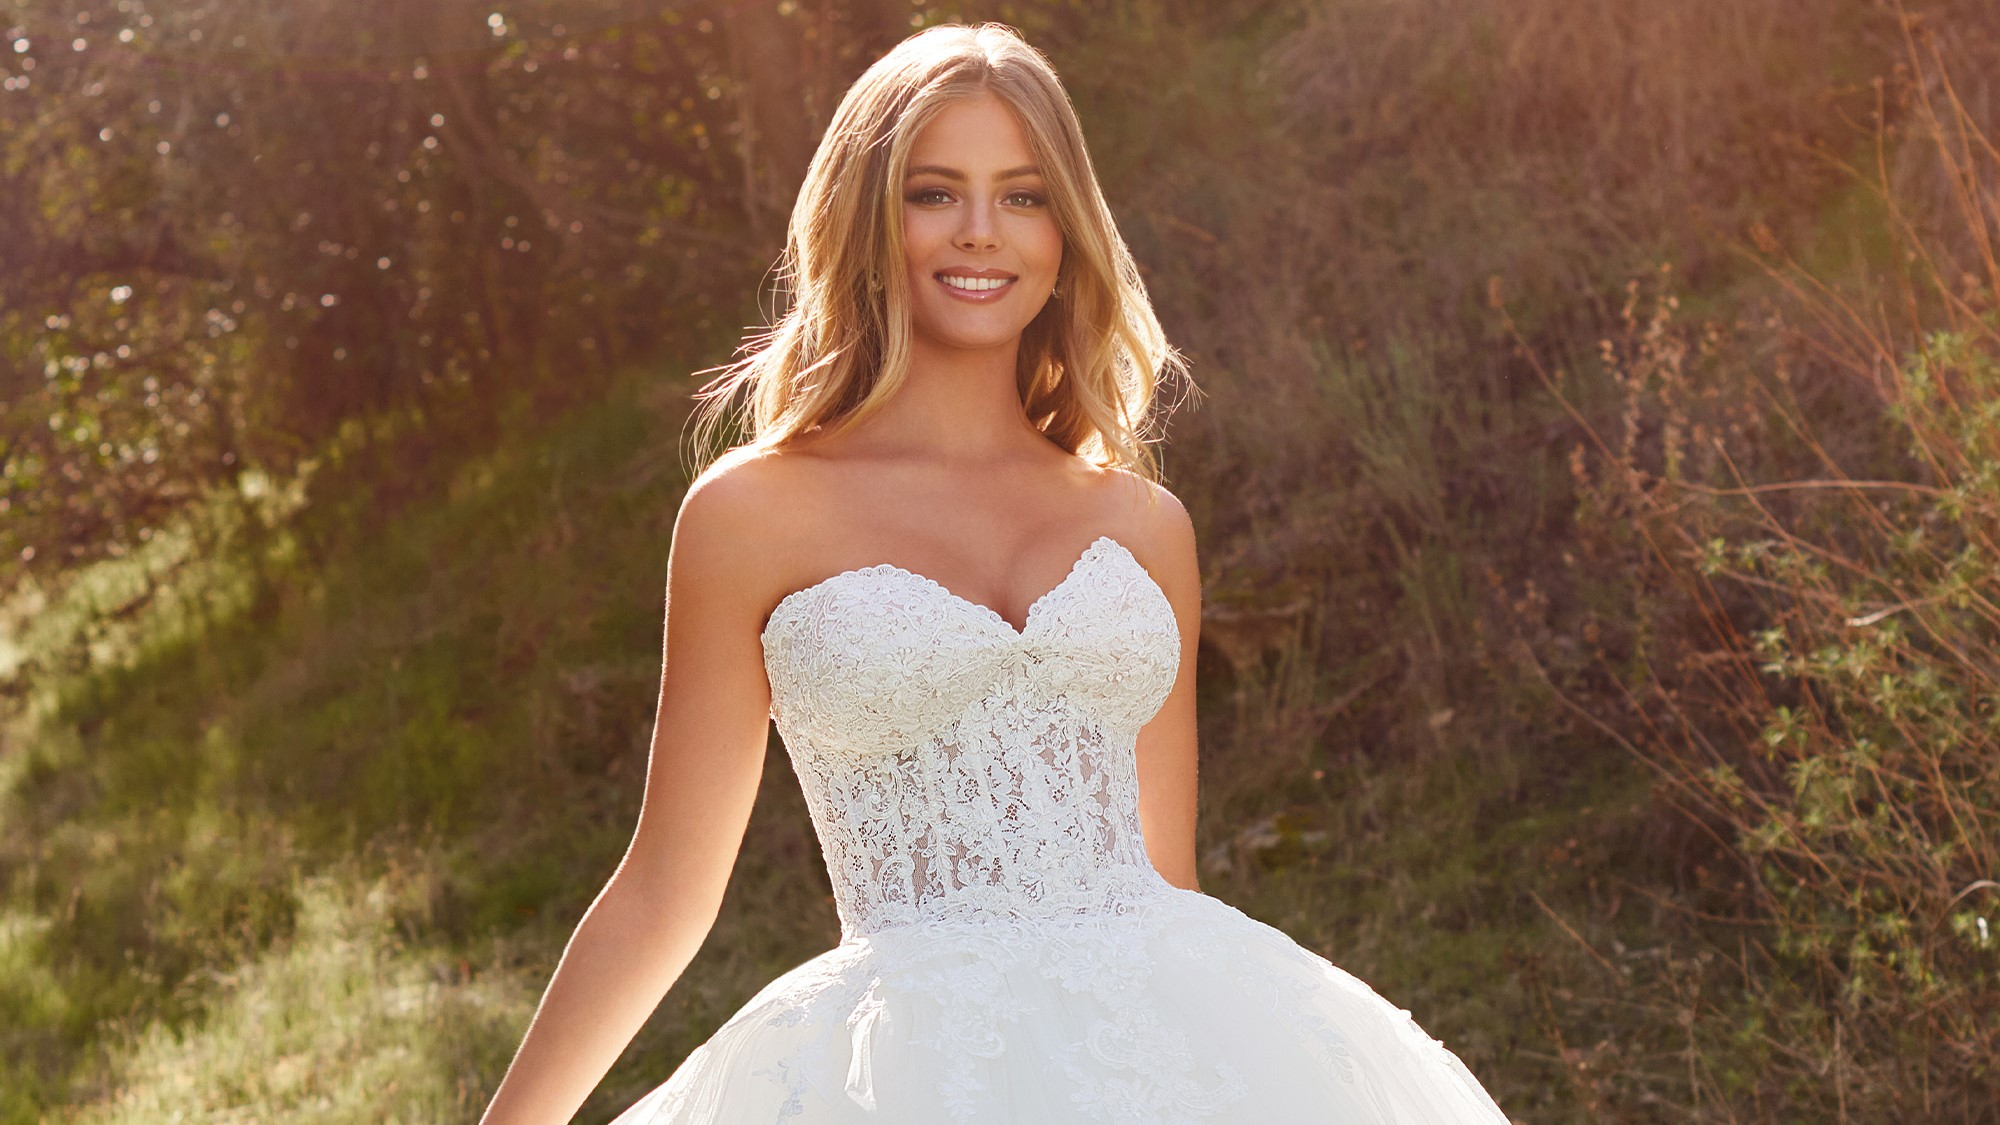 In a Princess Mood: 11 Ball Gown Wedding Dresses to Complete Your Royal Dreams